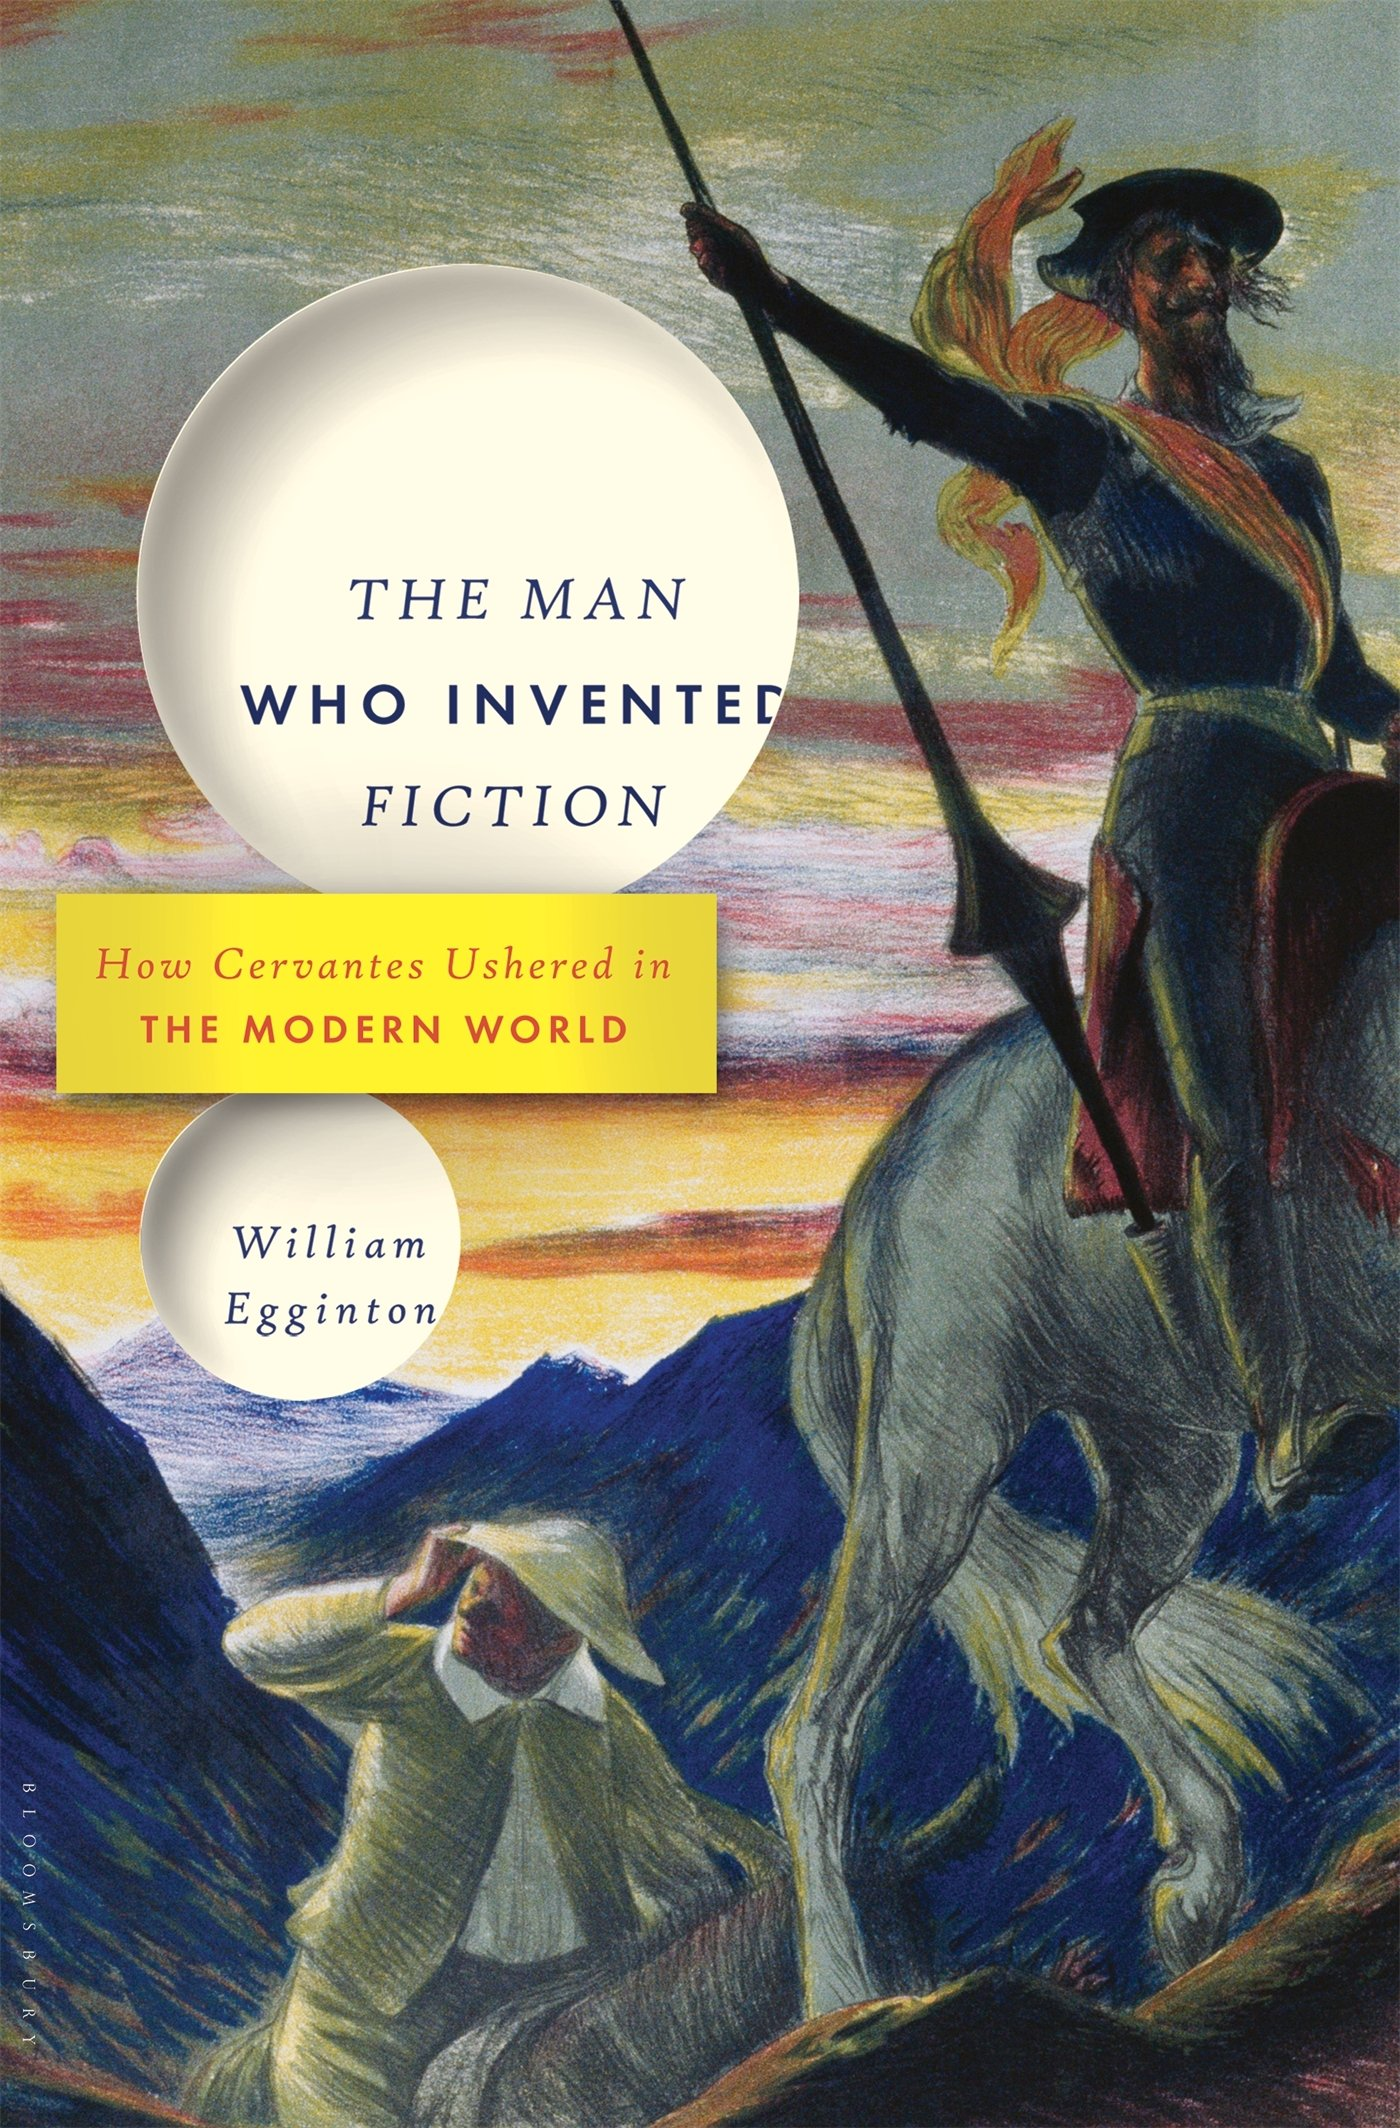 The Man Who Invented Fiction  How Cervantes Ushered In The Modern World